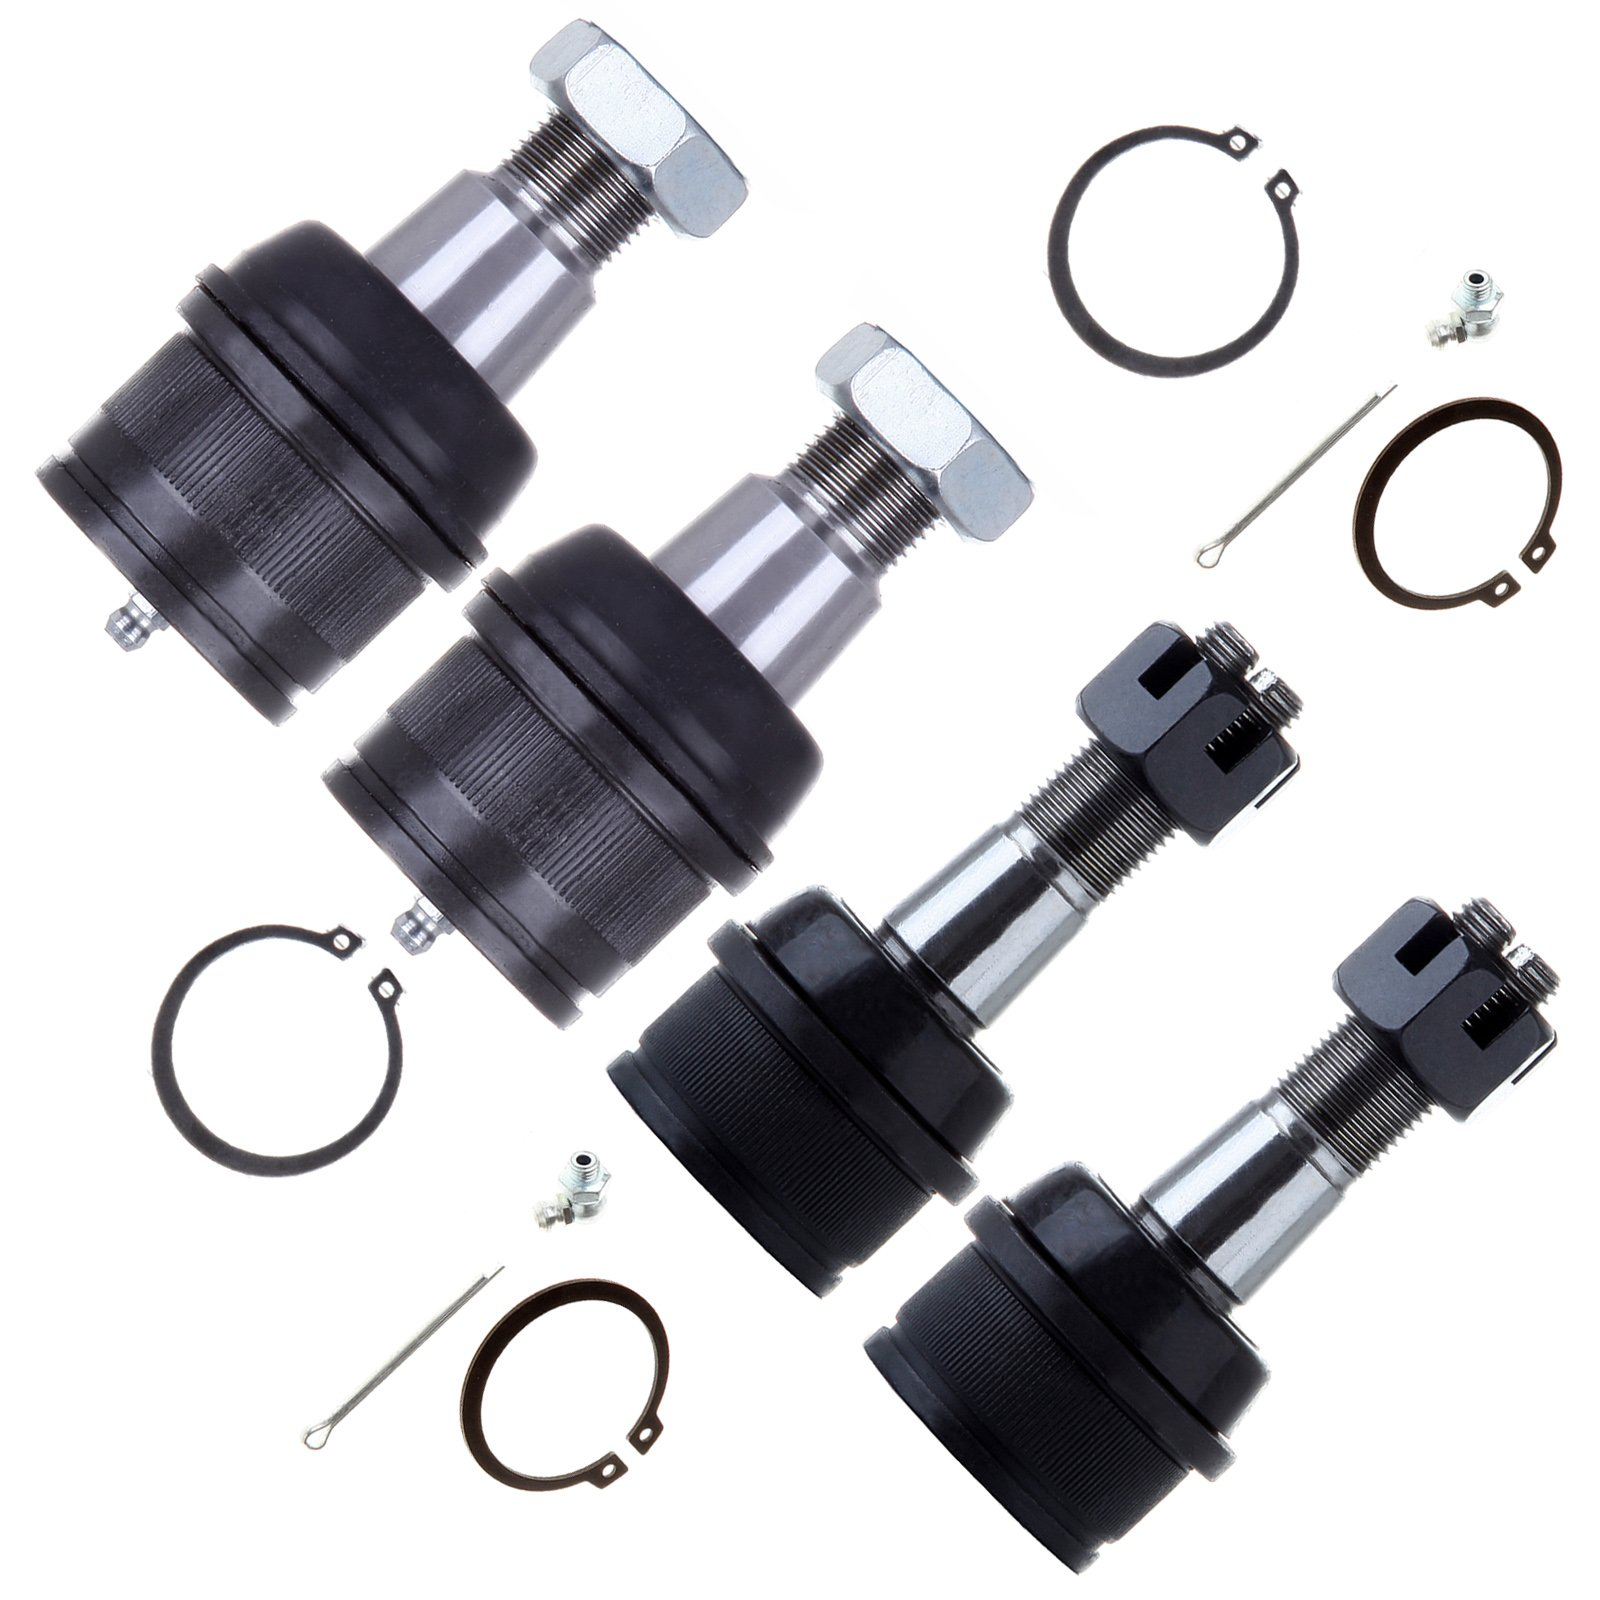 ECCPP Front Lower Upper Ball Joint Steering Kit for 1999 Dodge Ram 2500/3500 Ford F-250 Qty(4)